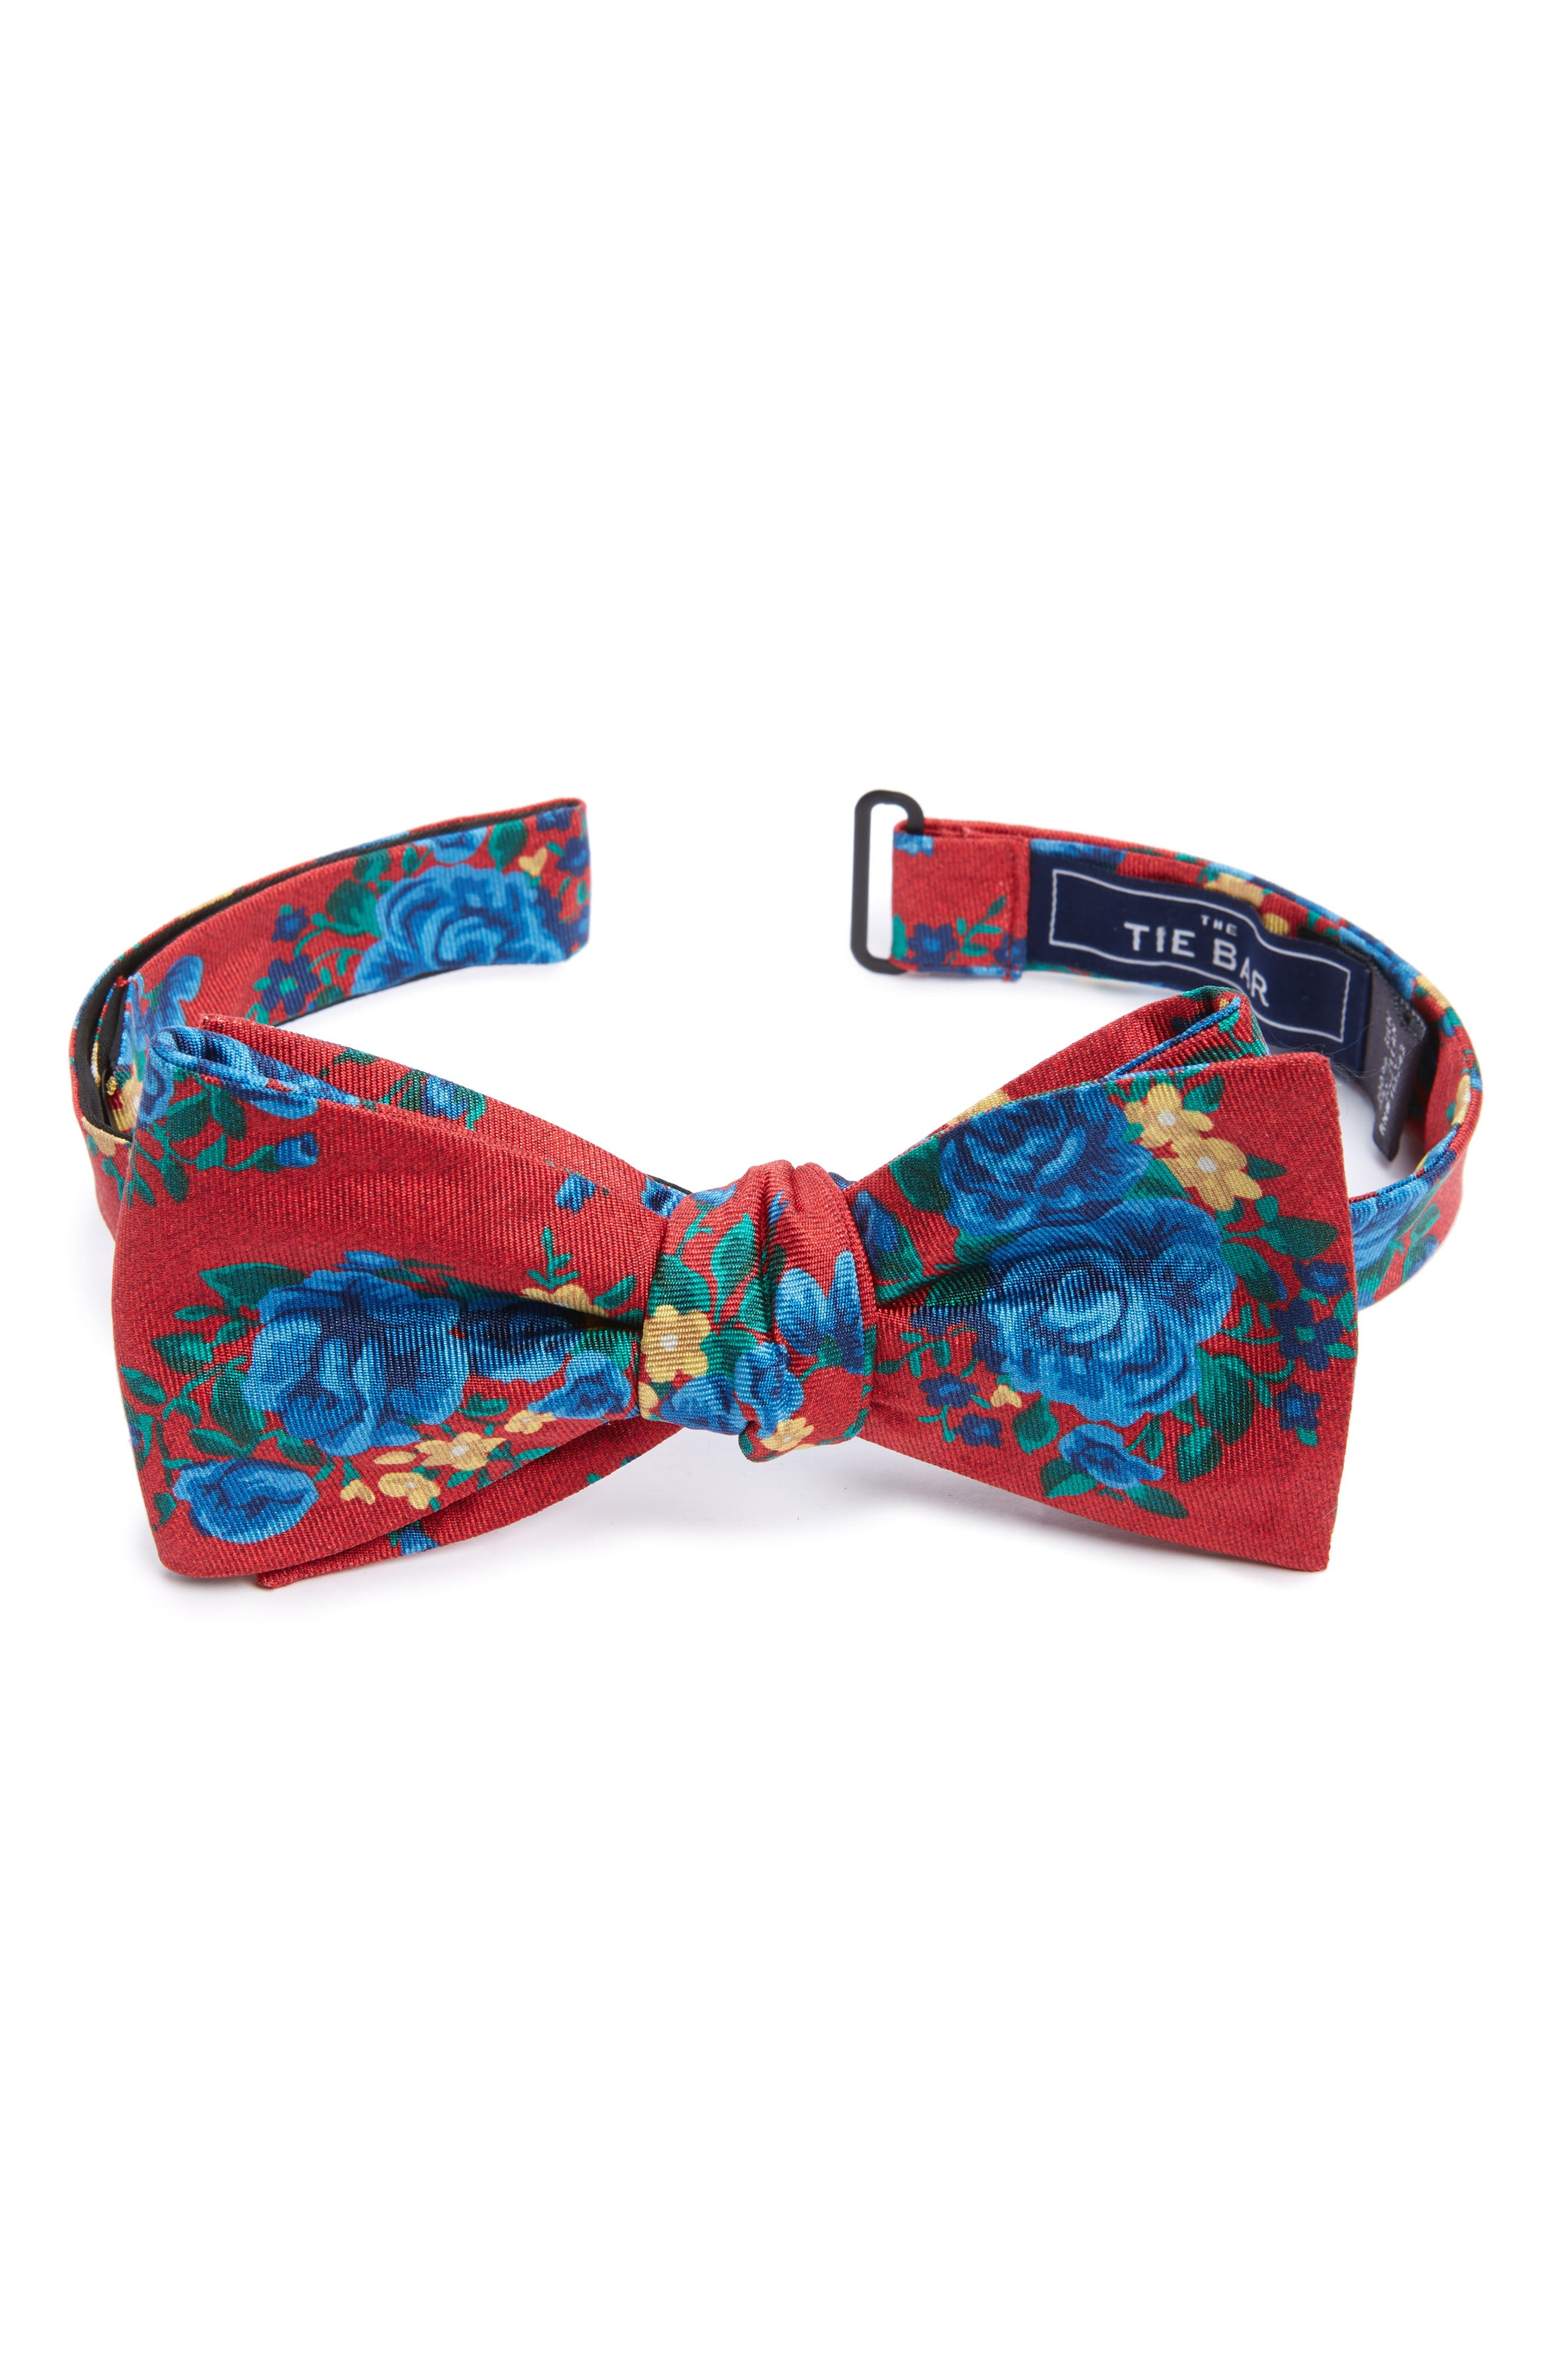 THE TIE BAR Hinterland Floral Silk Bow Tie